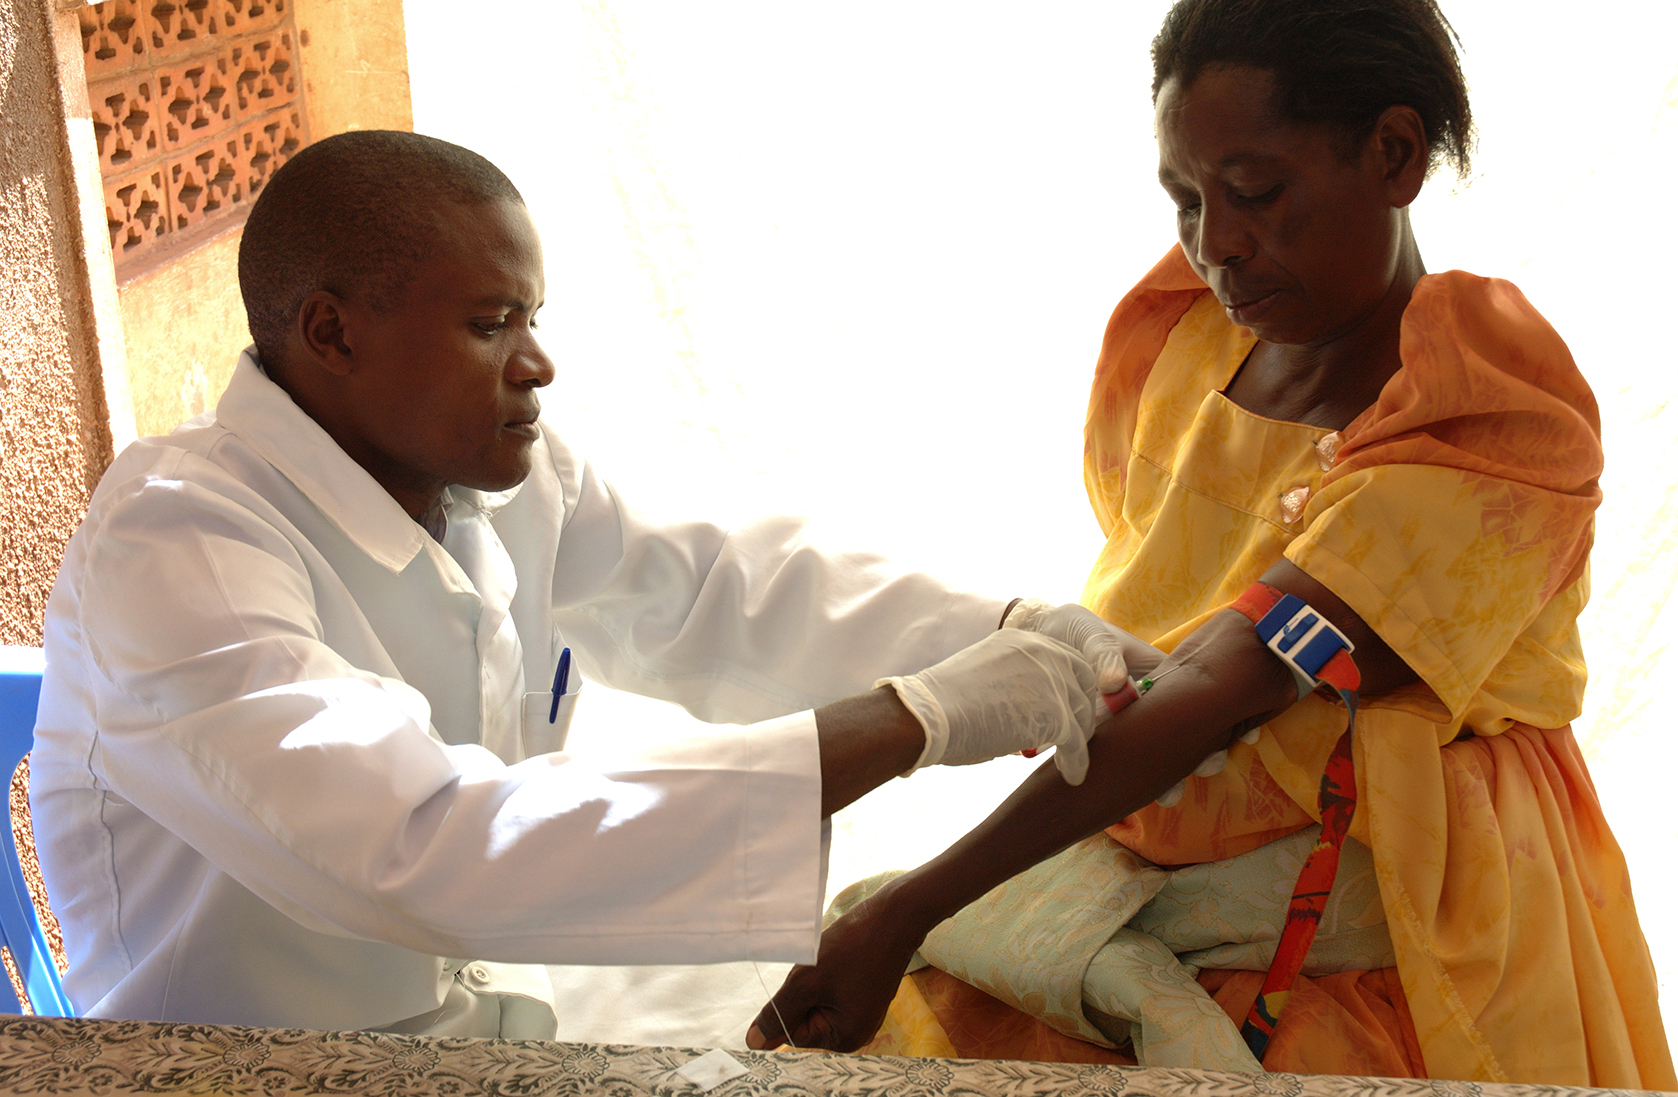 Vaccination at the Kampala health center.